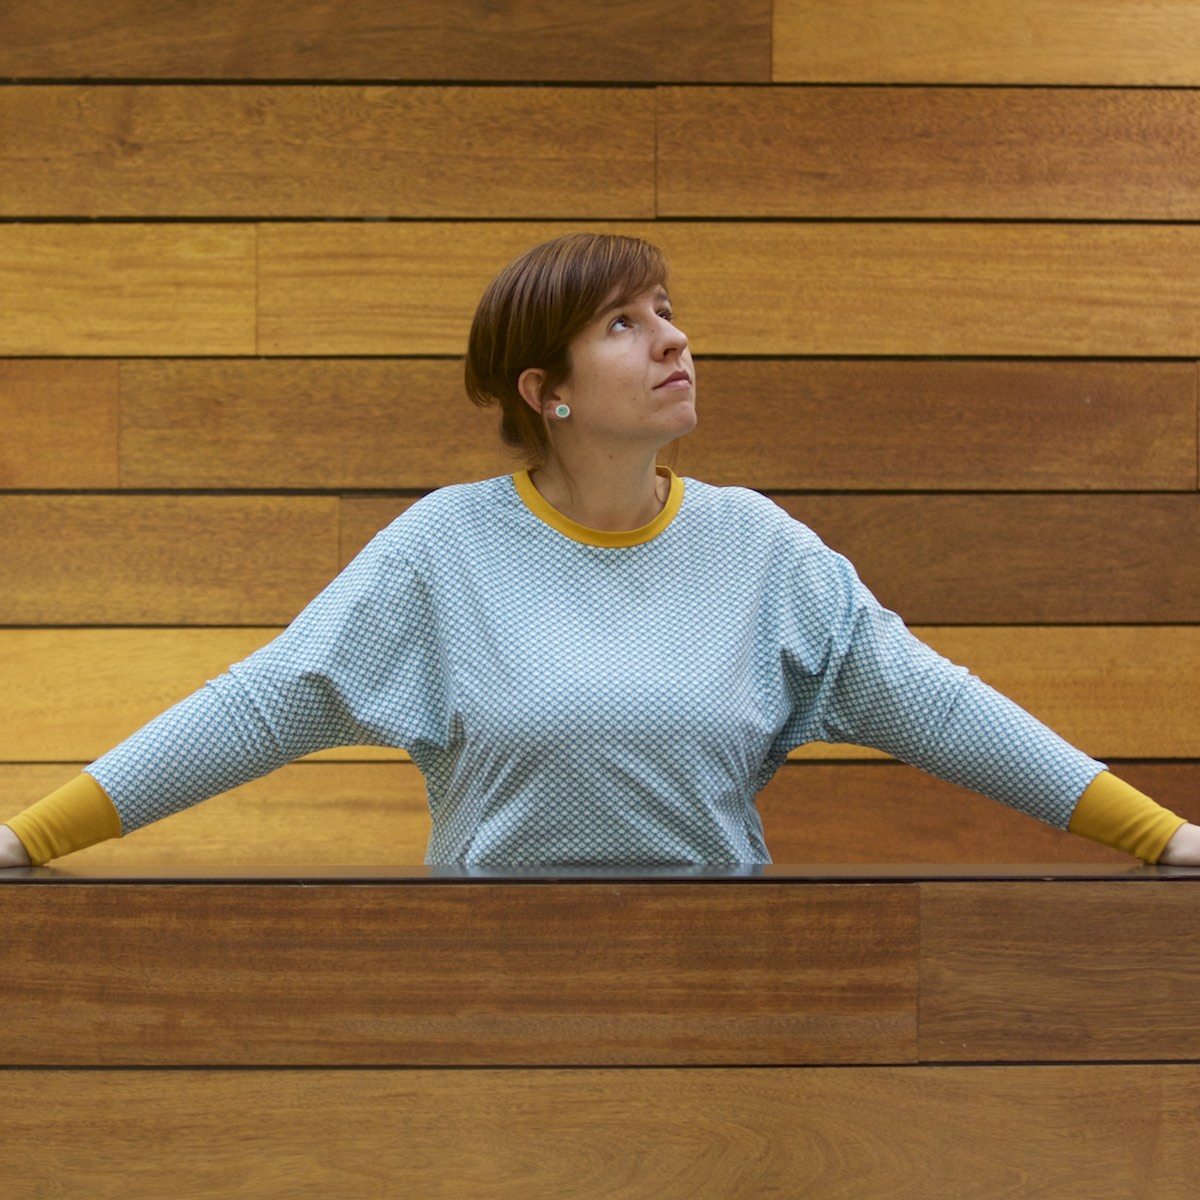 The Julia sweater pattern for teens and women by Compagnie M.